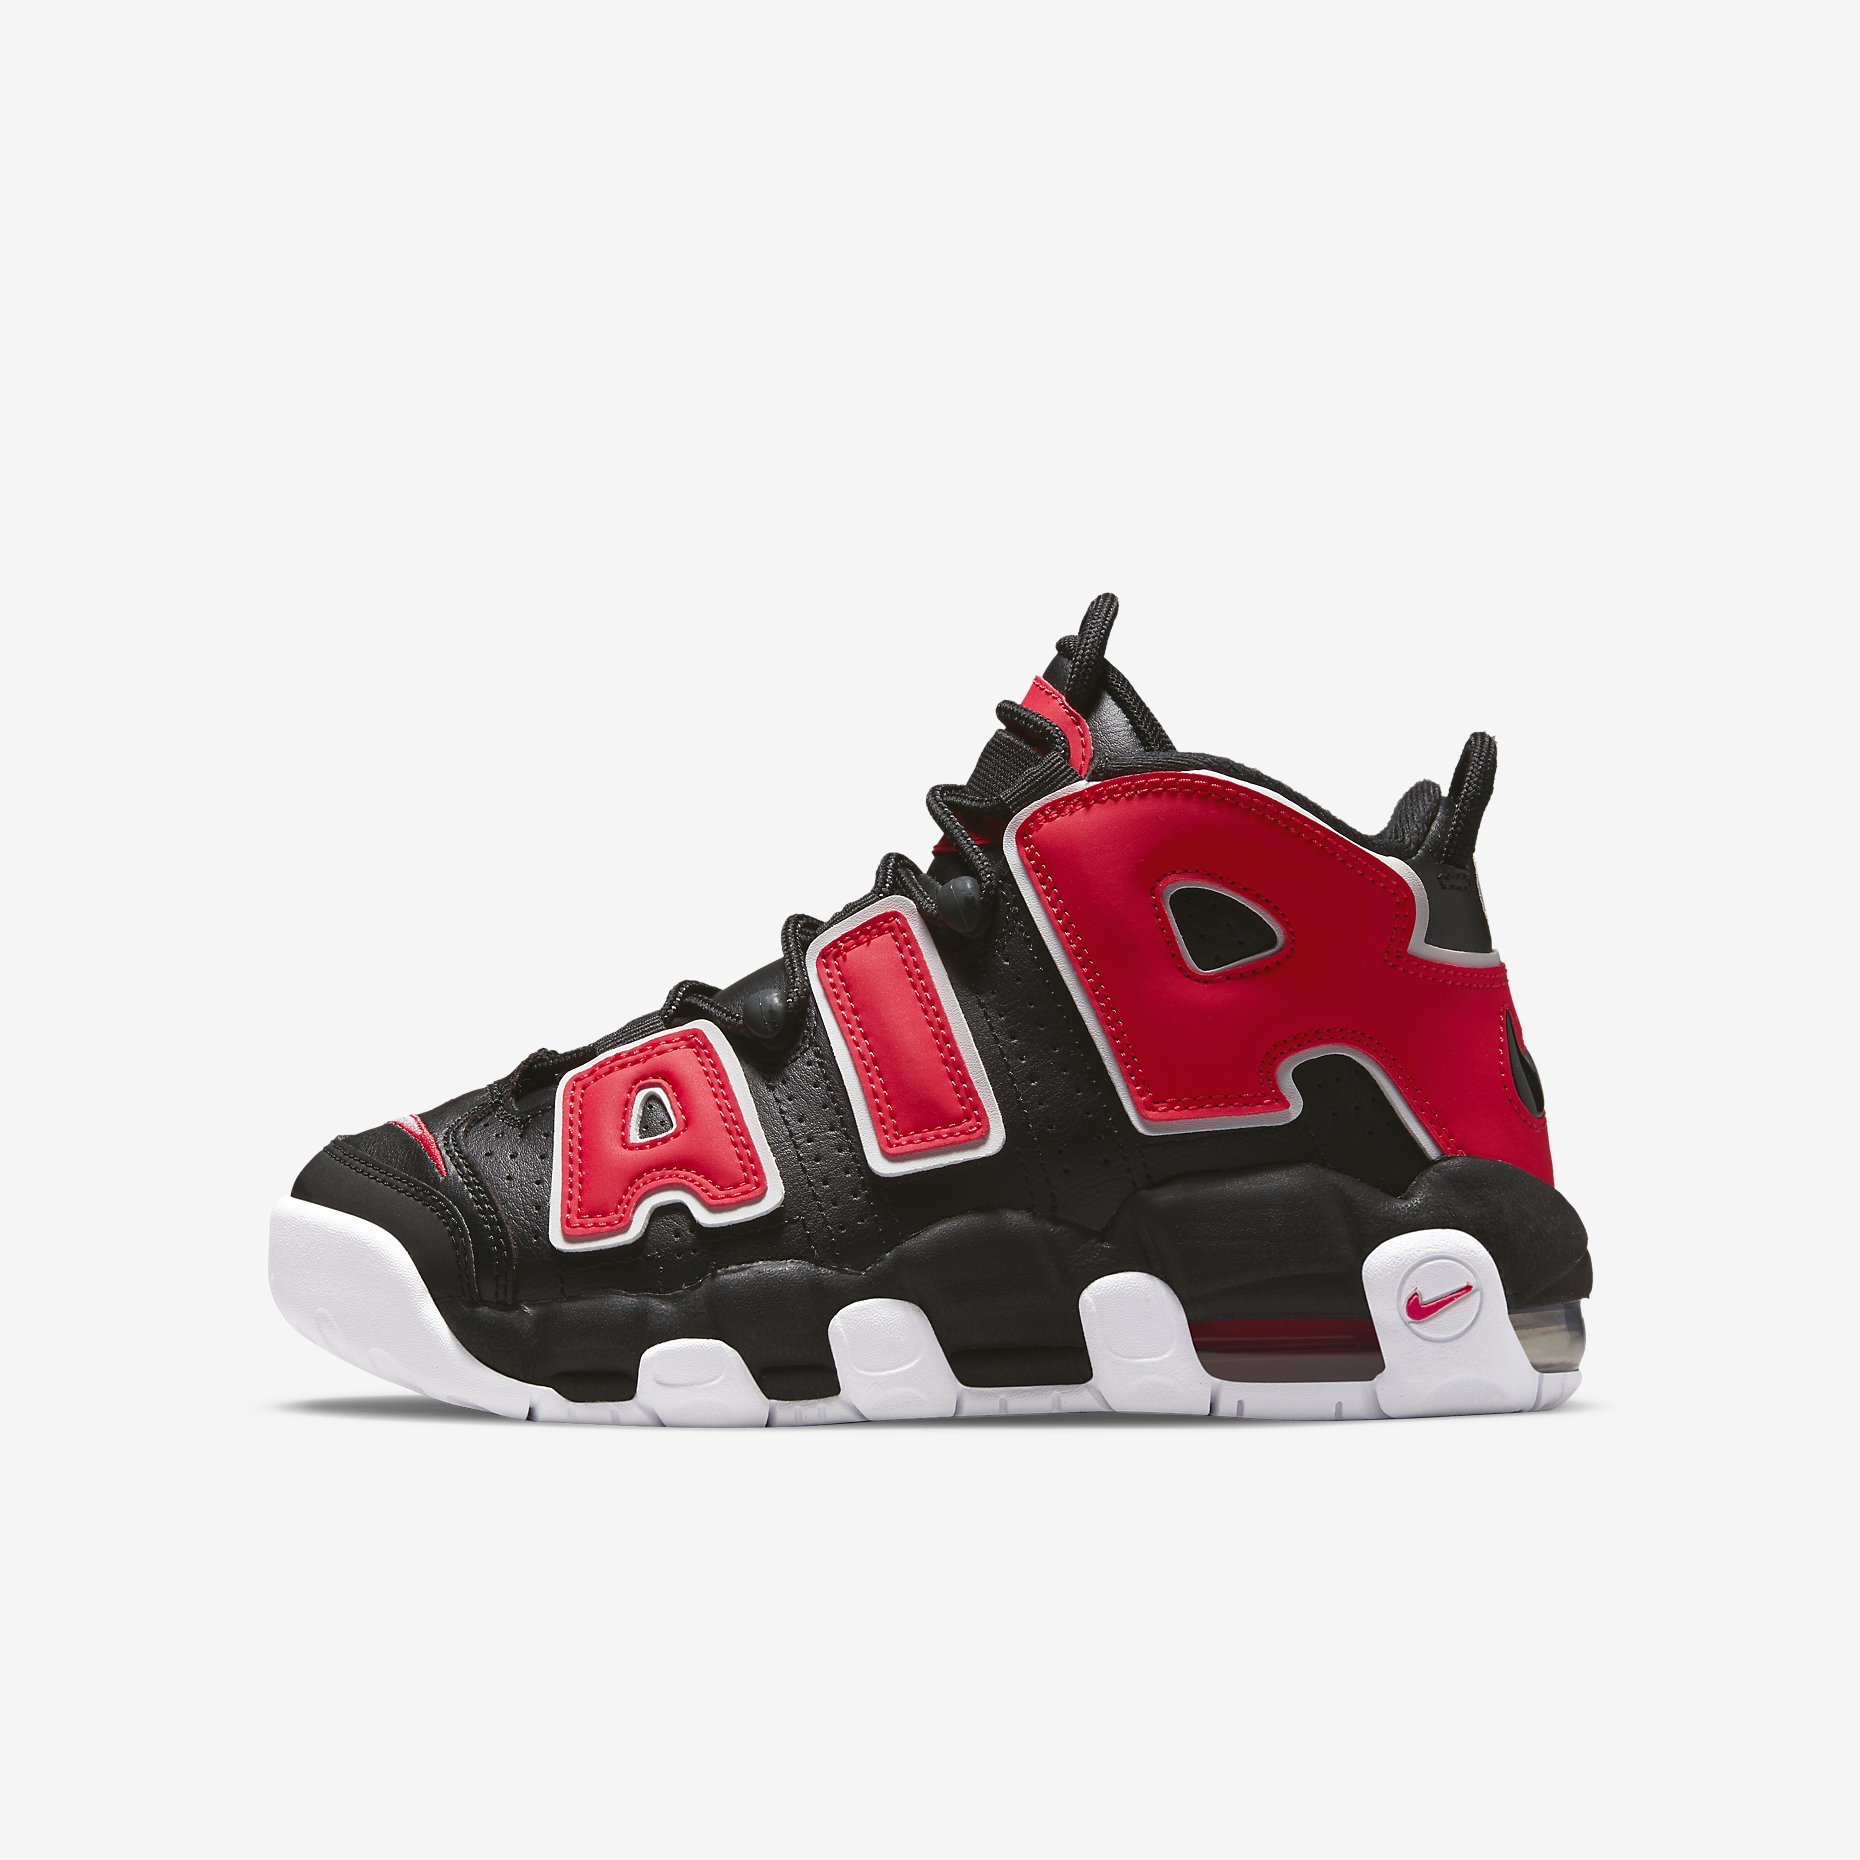 Nike Air More Uptempo GS 'Black/Red'